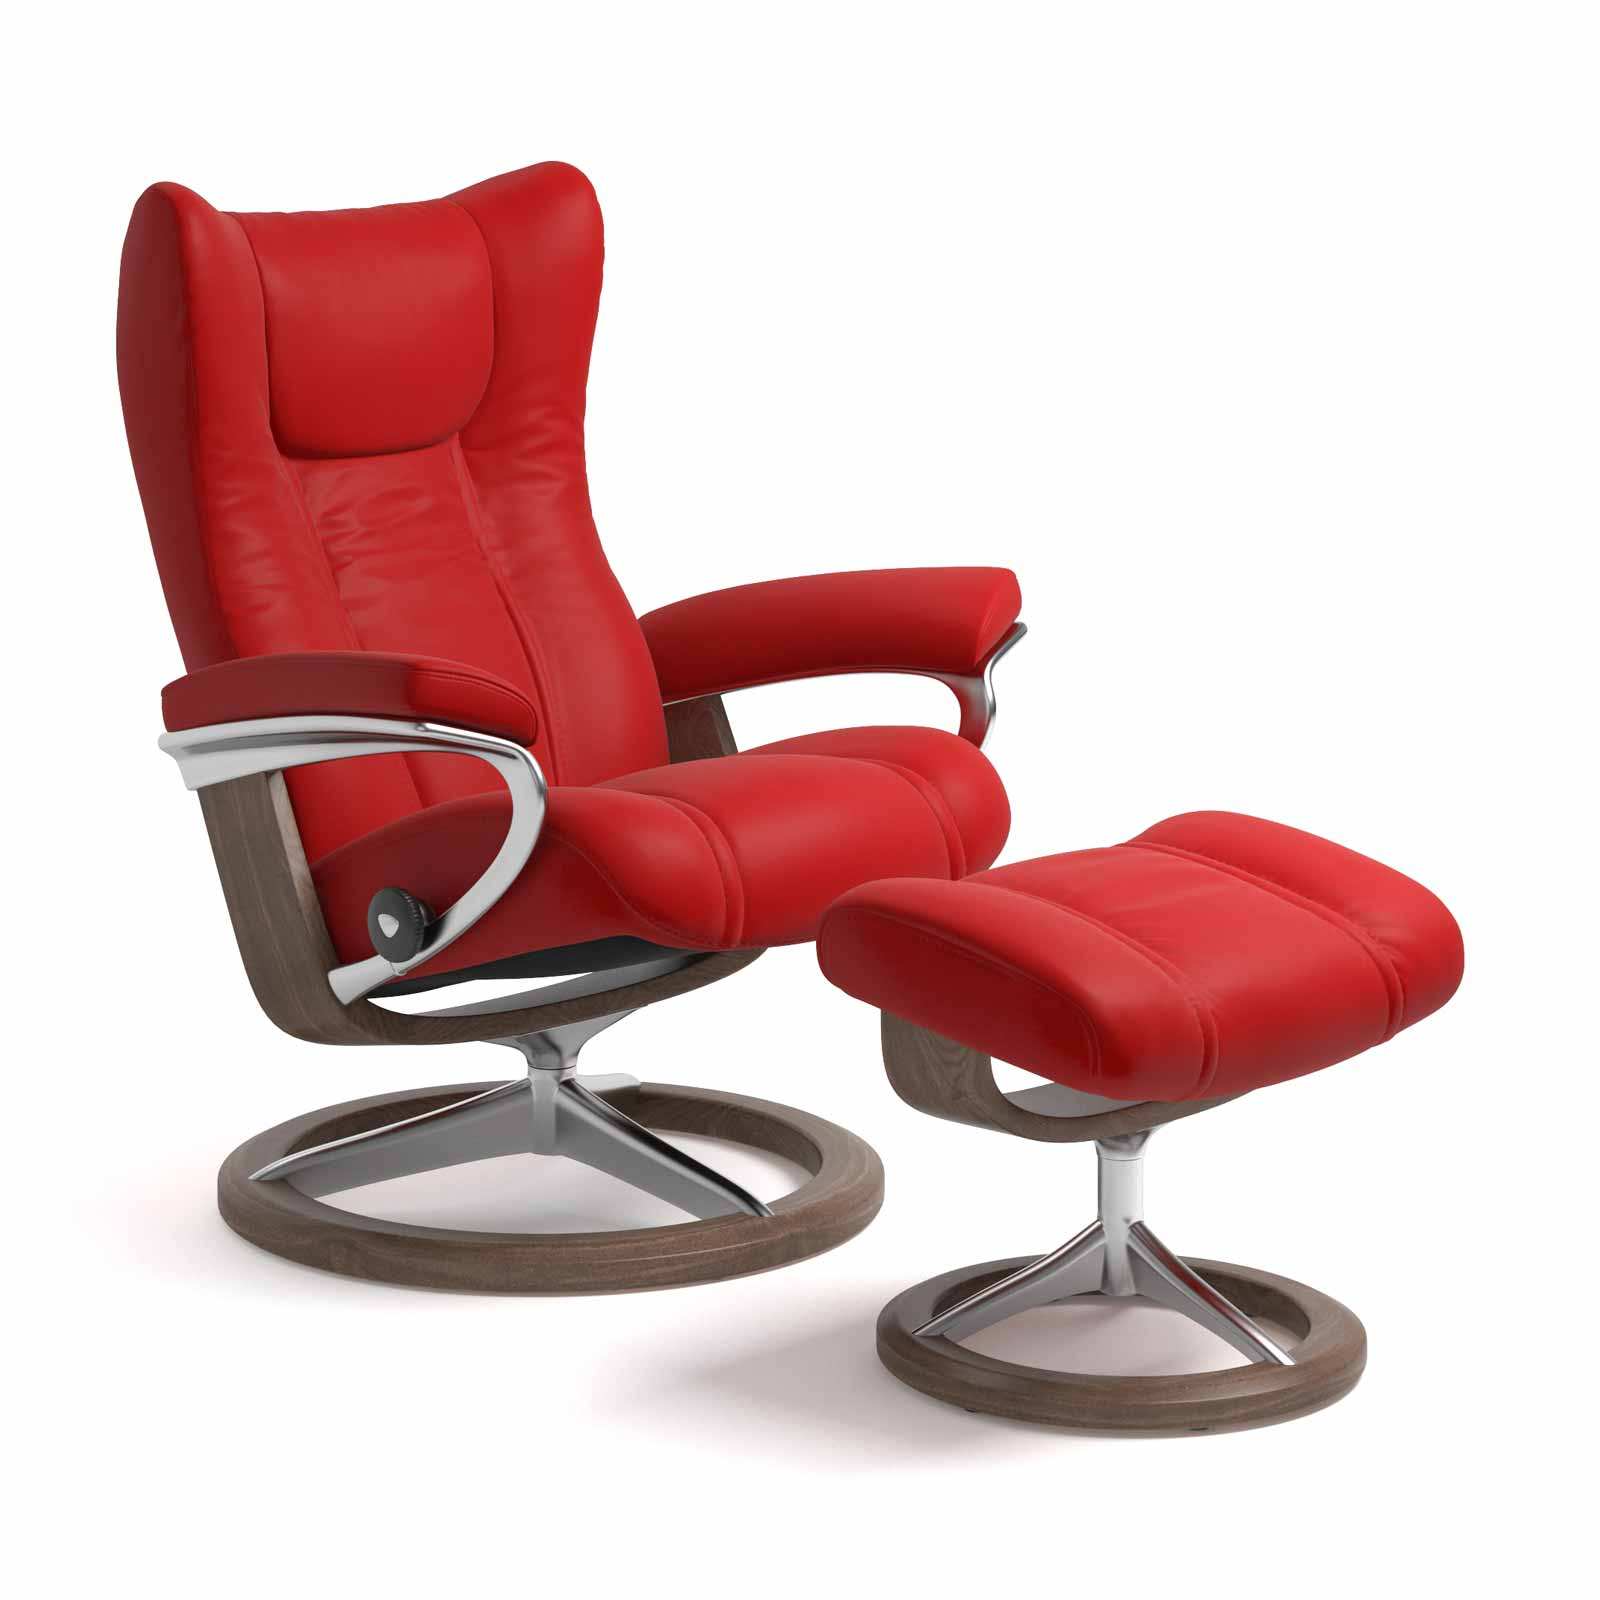 Stressless Magic Signature Sessel Stressless Sessel Wing Signature Batick Chilli Red Mit Hocker